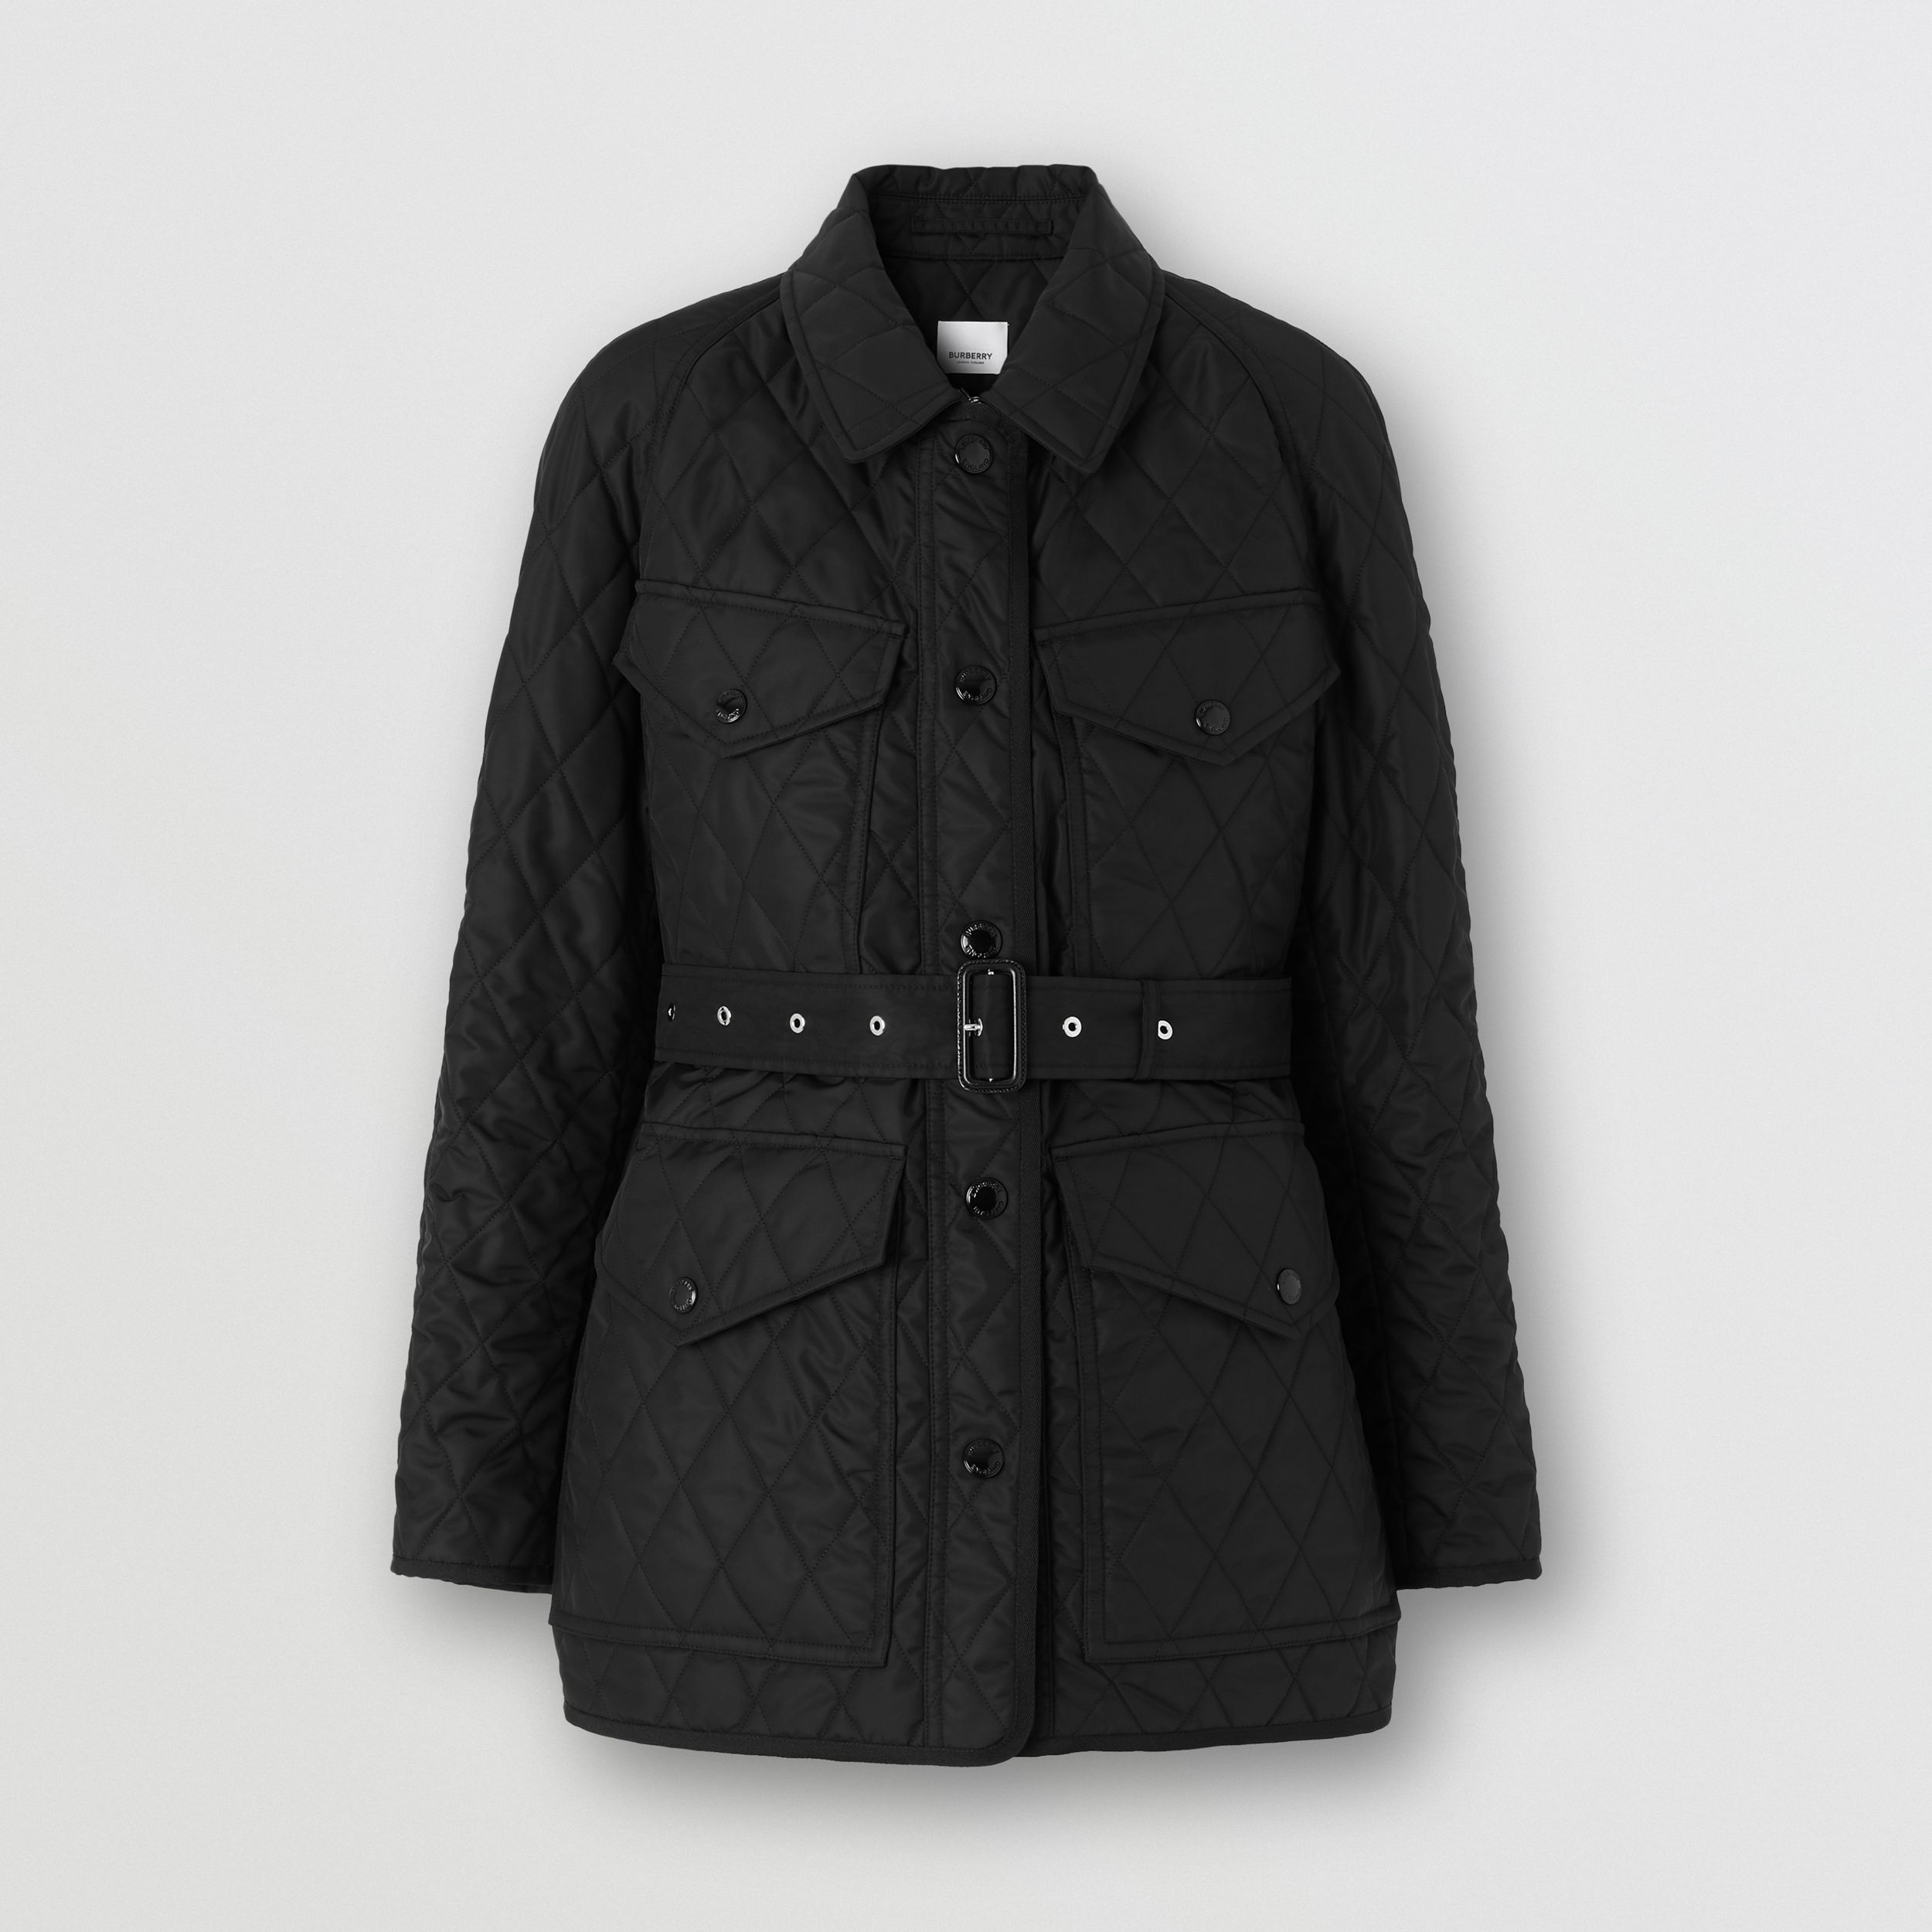 Diamond Quilted Nylon Canvas Field Jacket in Black - Women | Burberry - 4